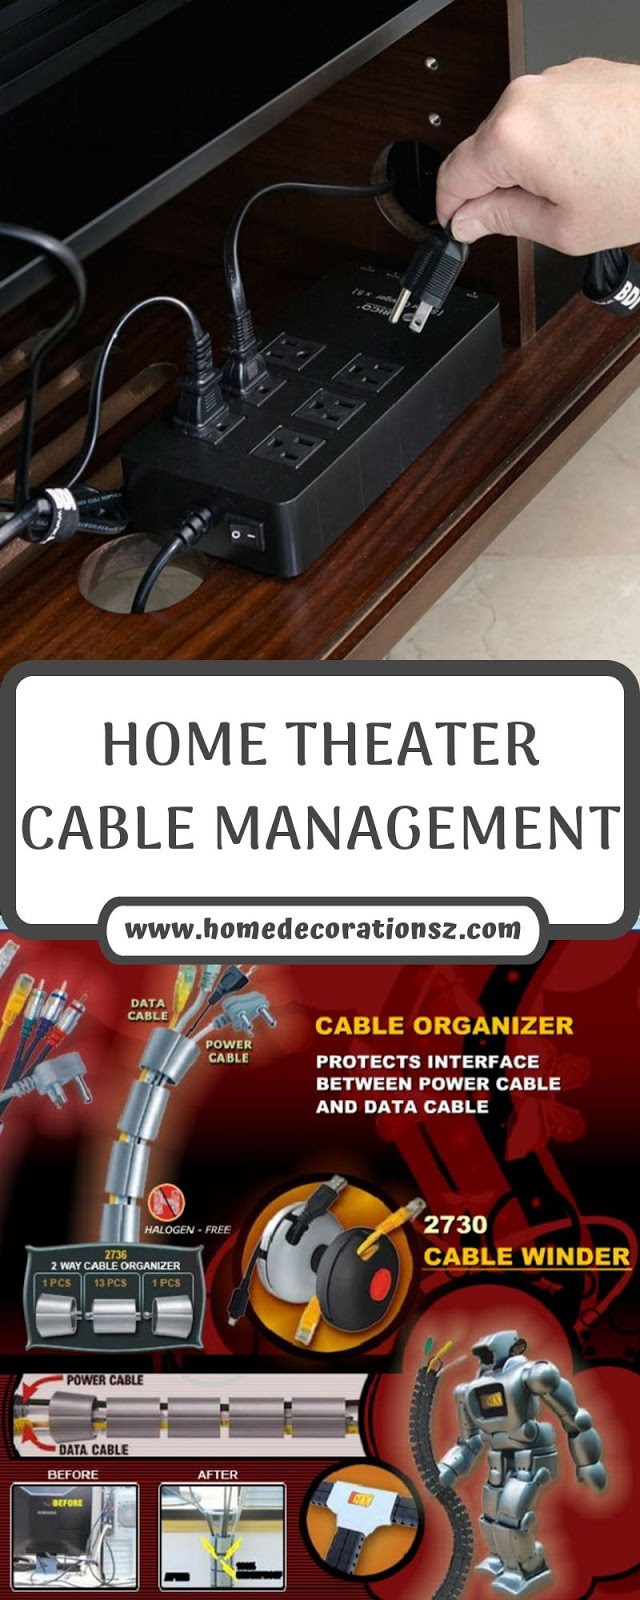 HOME THEATER CABLE MANAGEMENT